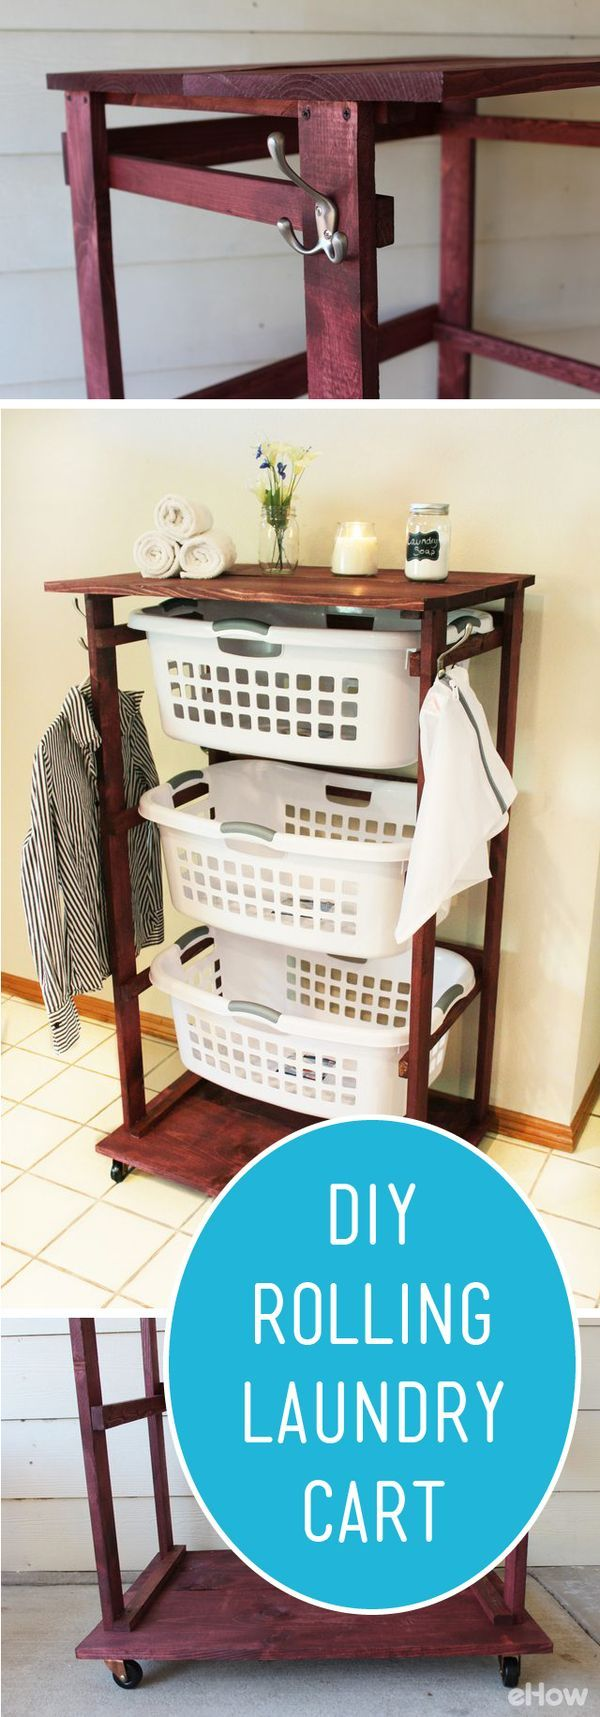 Laundry Table Ideas laundry closet storage ideas small laundry room sink laundry room table with storage laundry folding table ideas laundry storage between washer dryer A Rolling Laundry Cart Allows You To Push Around Three Laundry Baskets At Once Cutting